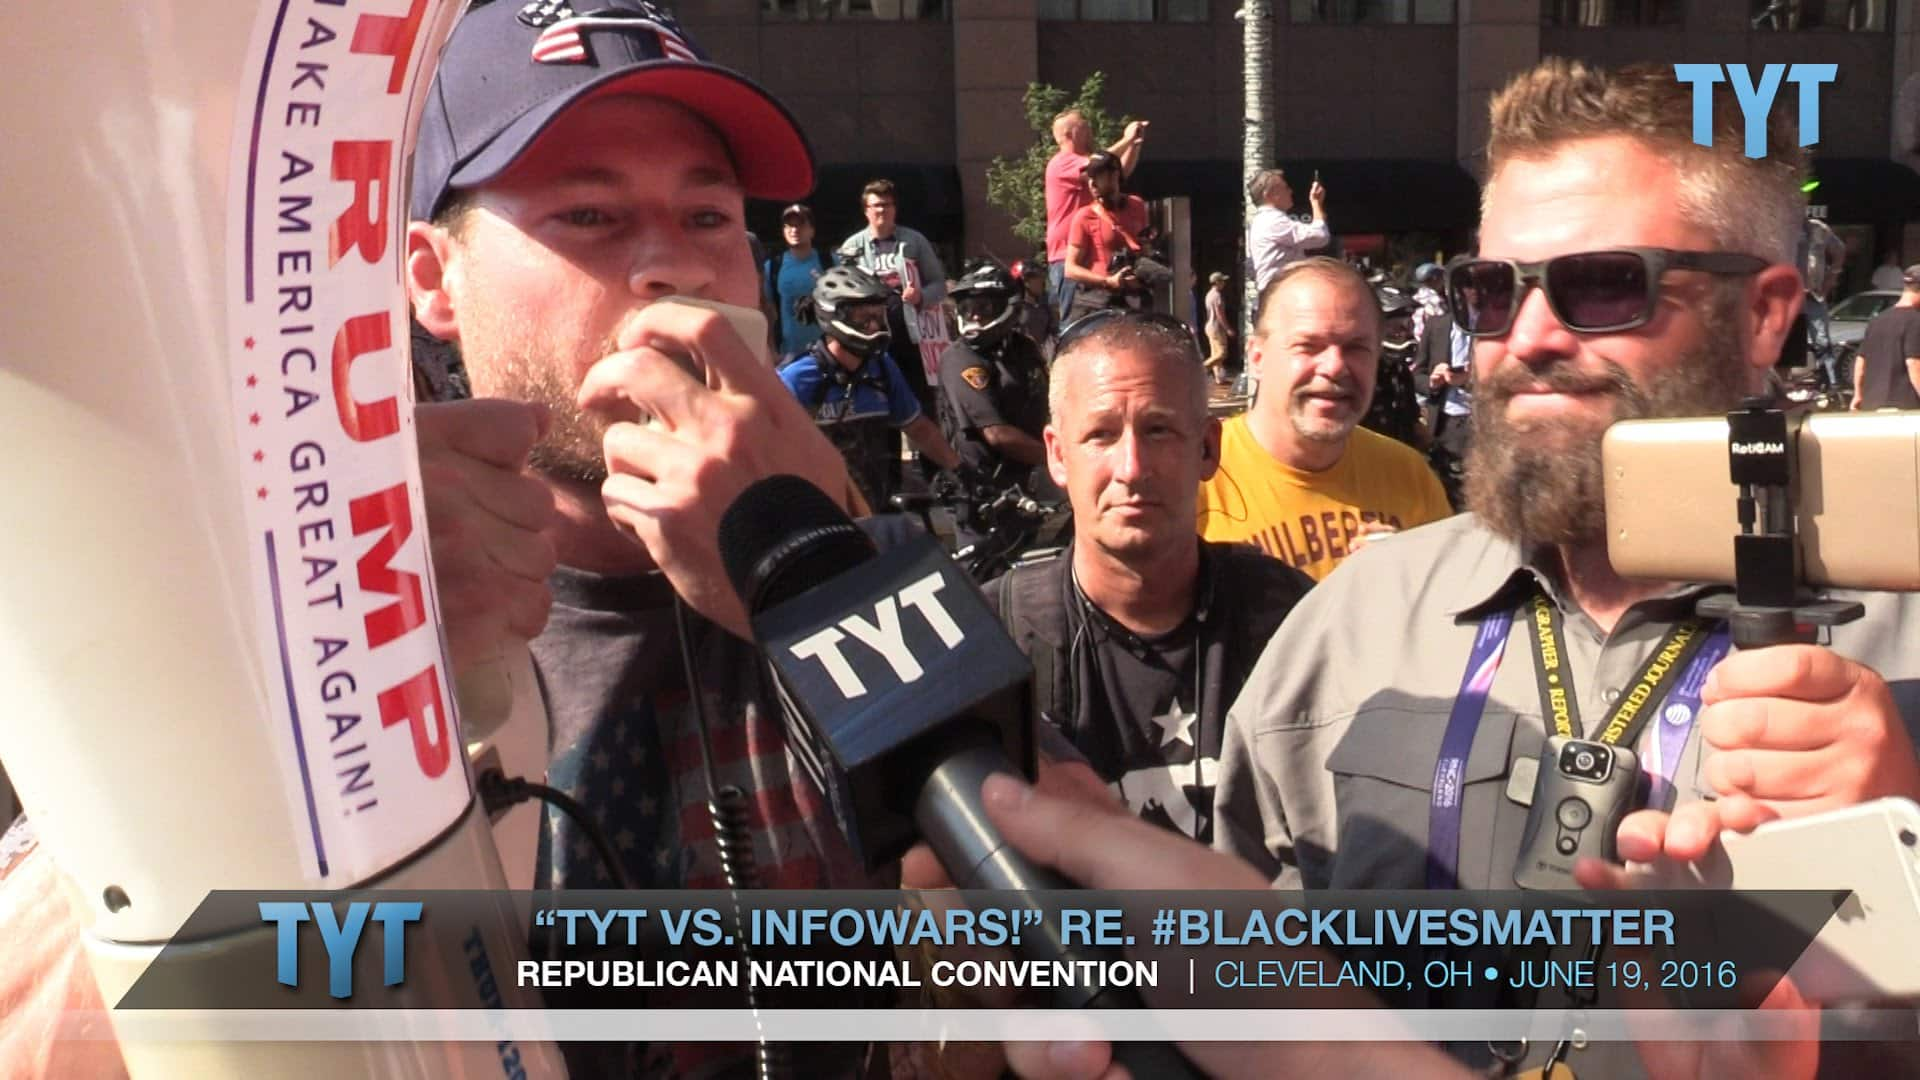 TYT vs. InfoWars re. #BlackLivesMatter At RNC Convention 23